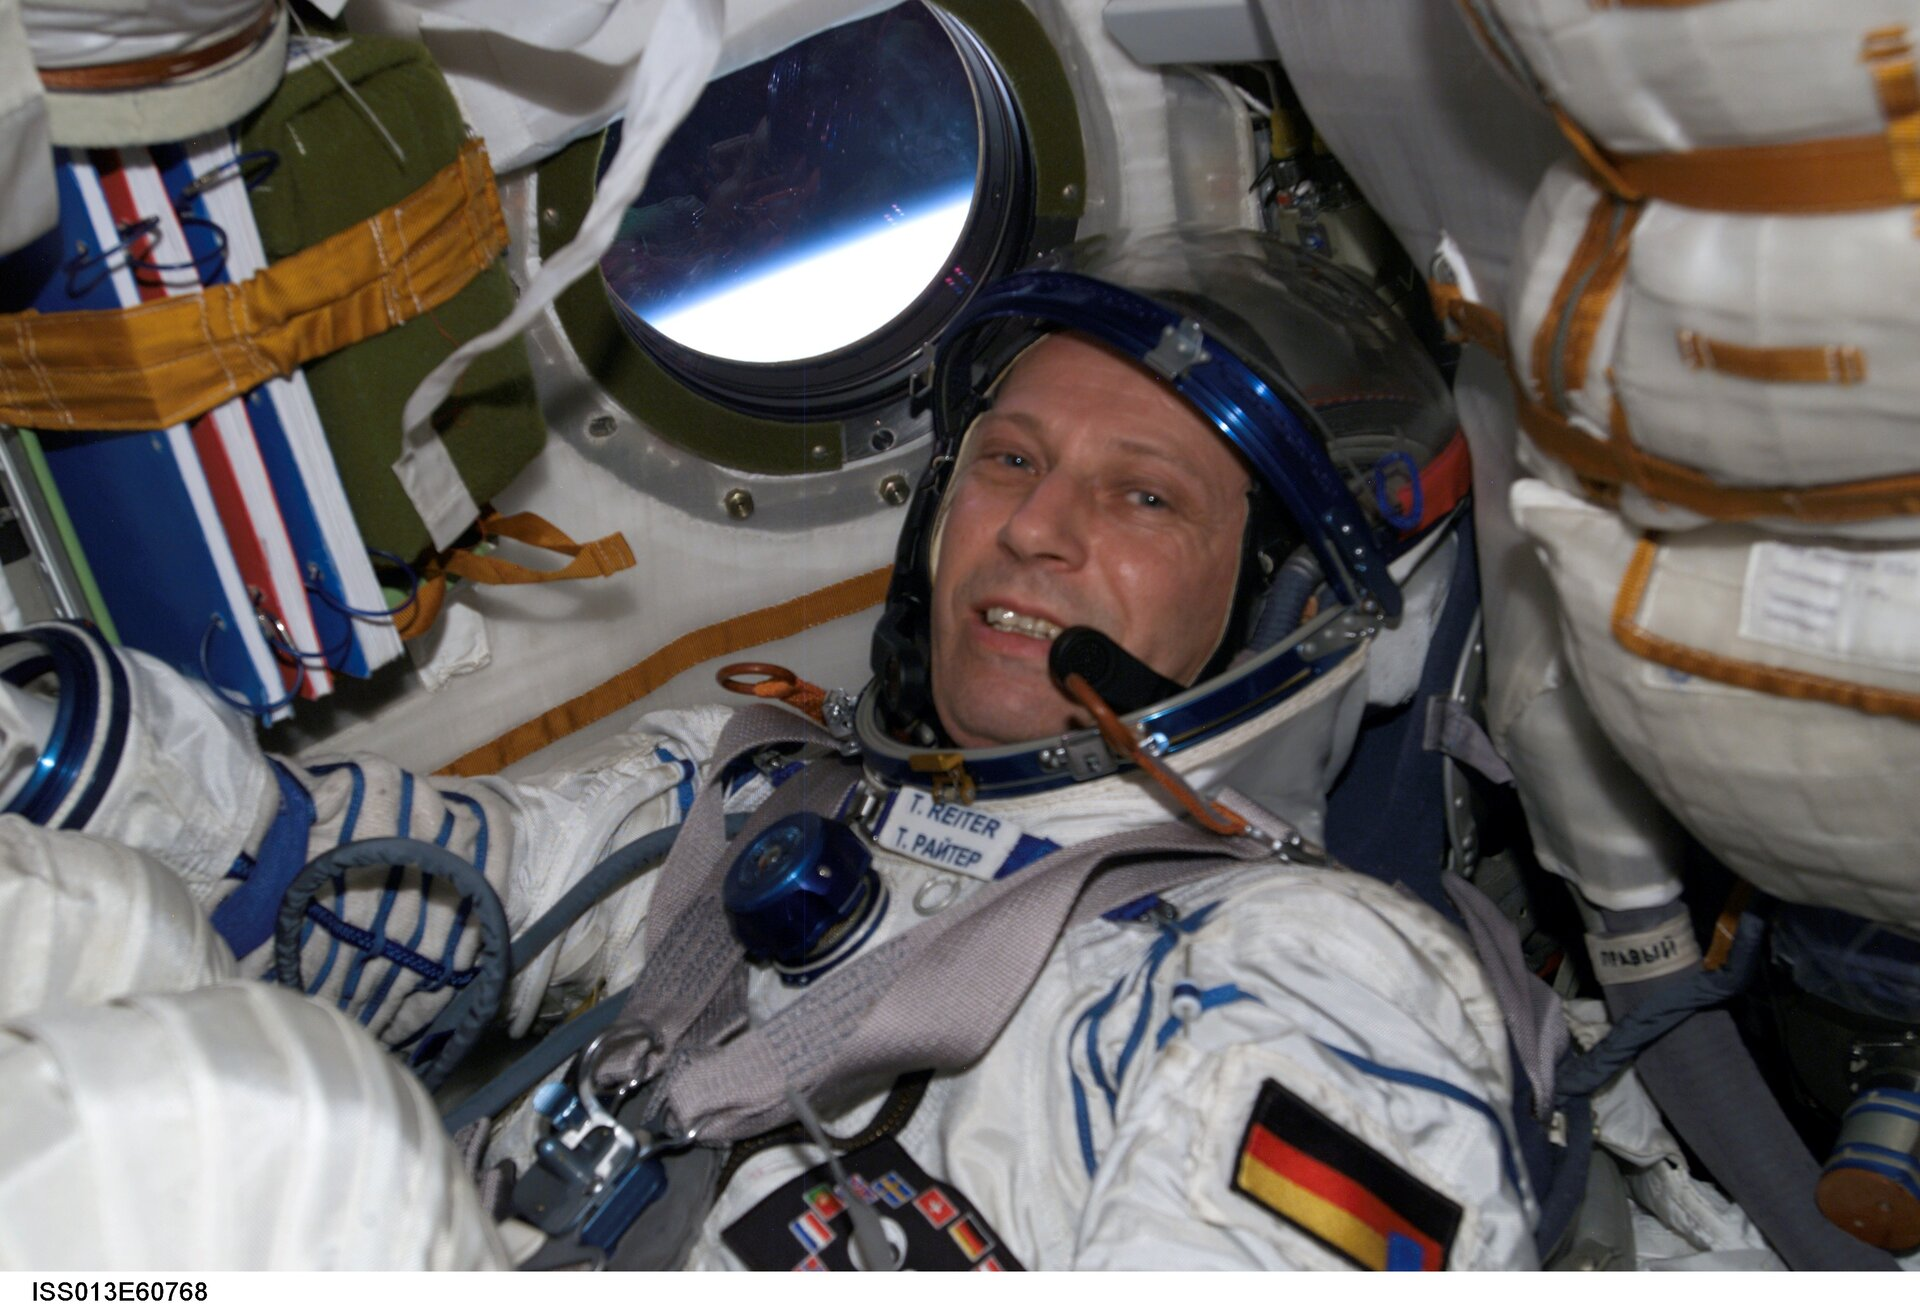 The crew will wear their Russian Sokol spacesuits inside the Soyuz